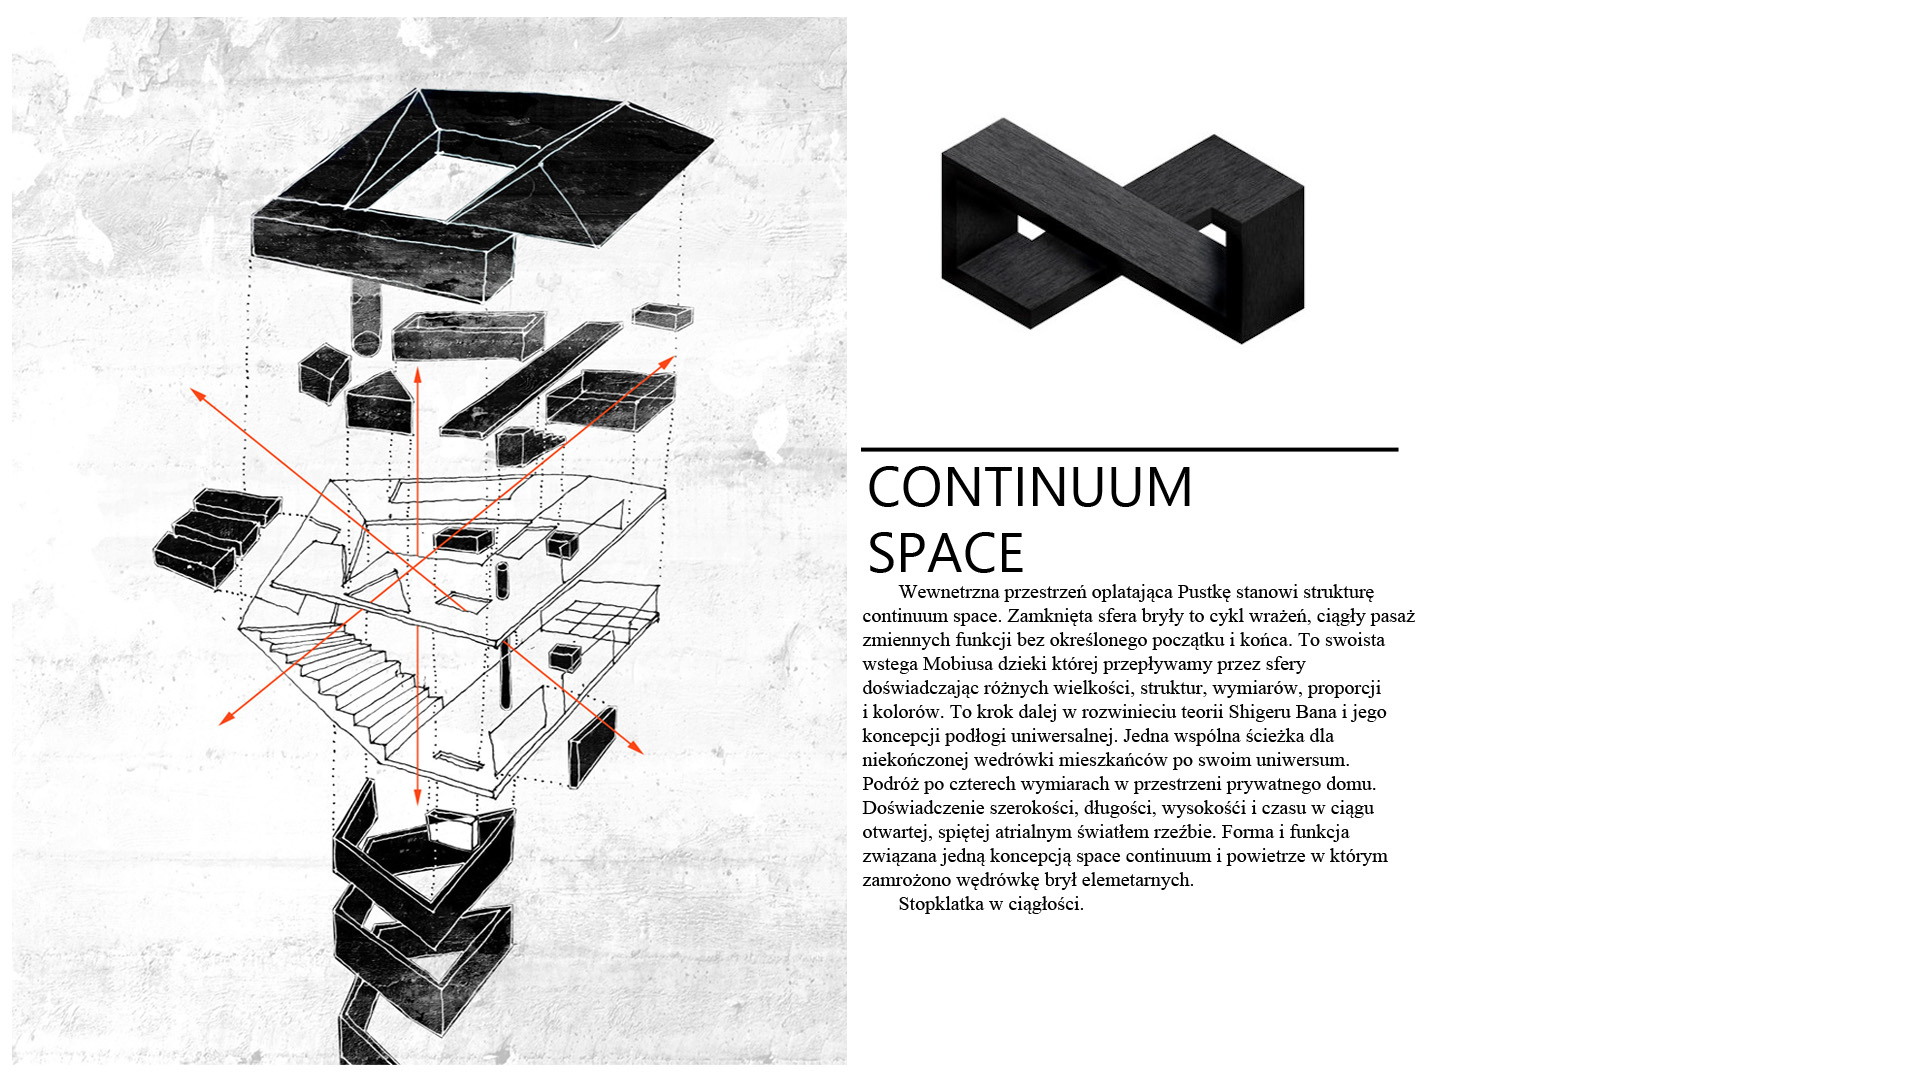 Spiral House - continuum space - opis